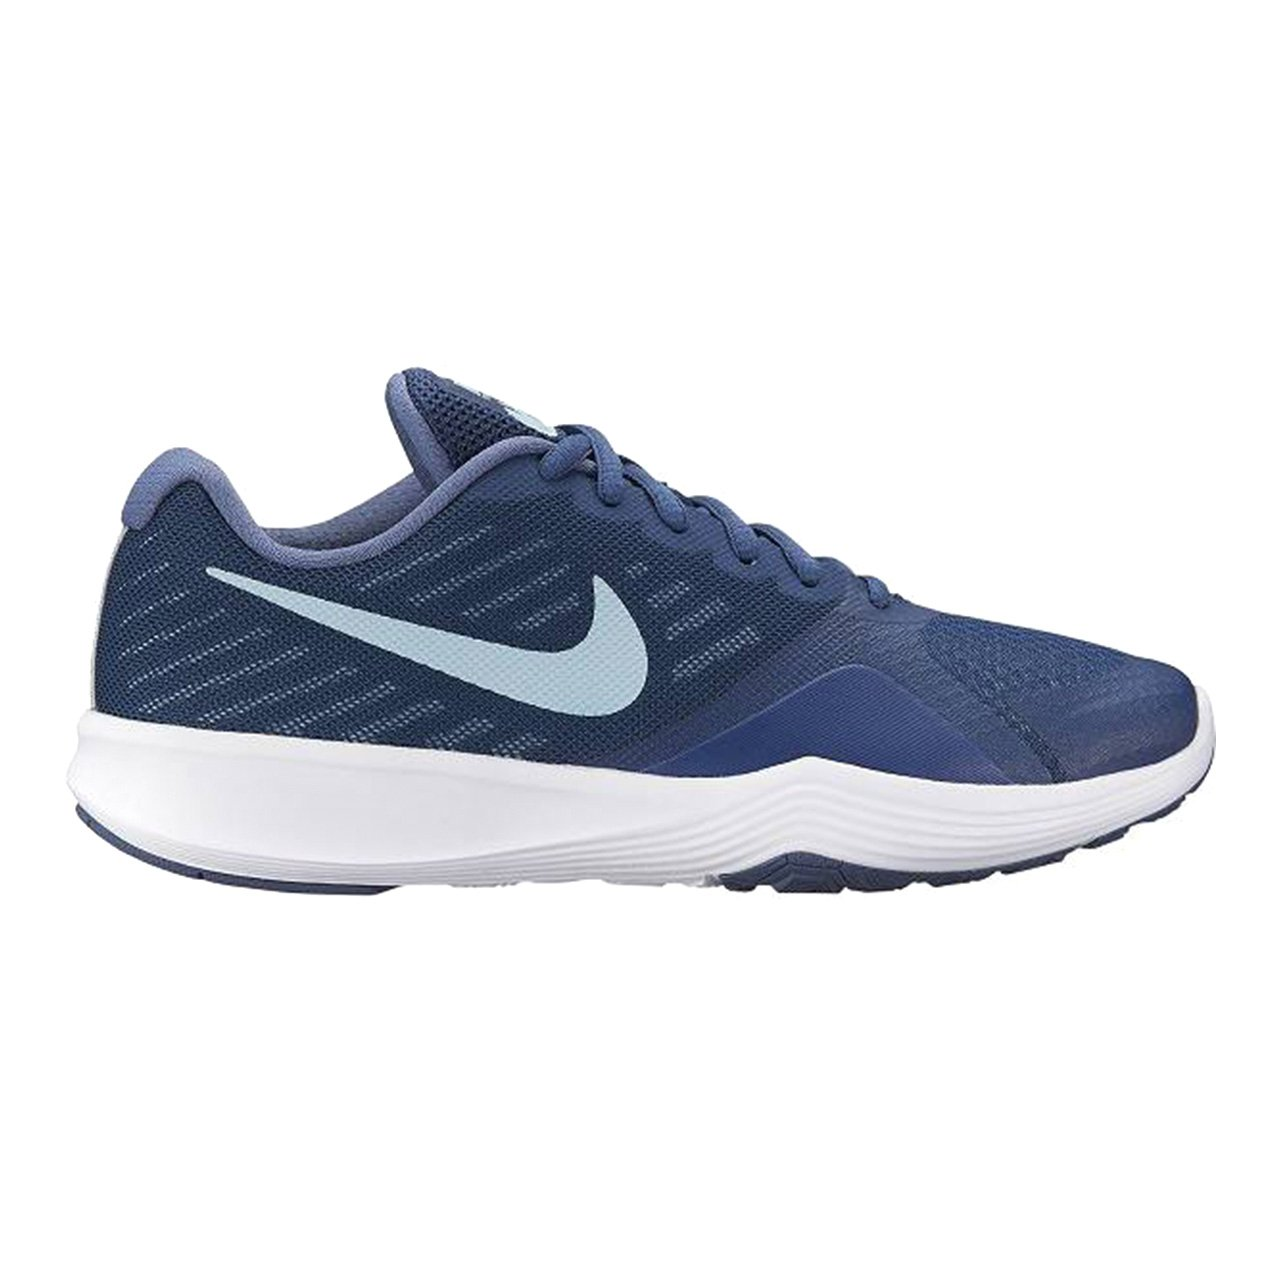 e541281c3bba Galleon - NIKE Women s City Trainer Shoes Navy Ocean Bliss Diffused Blue 8